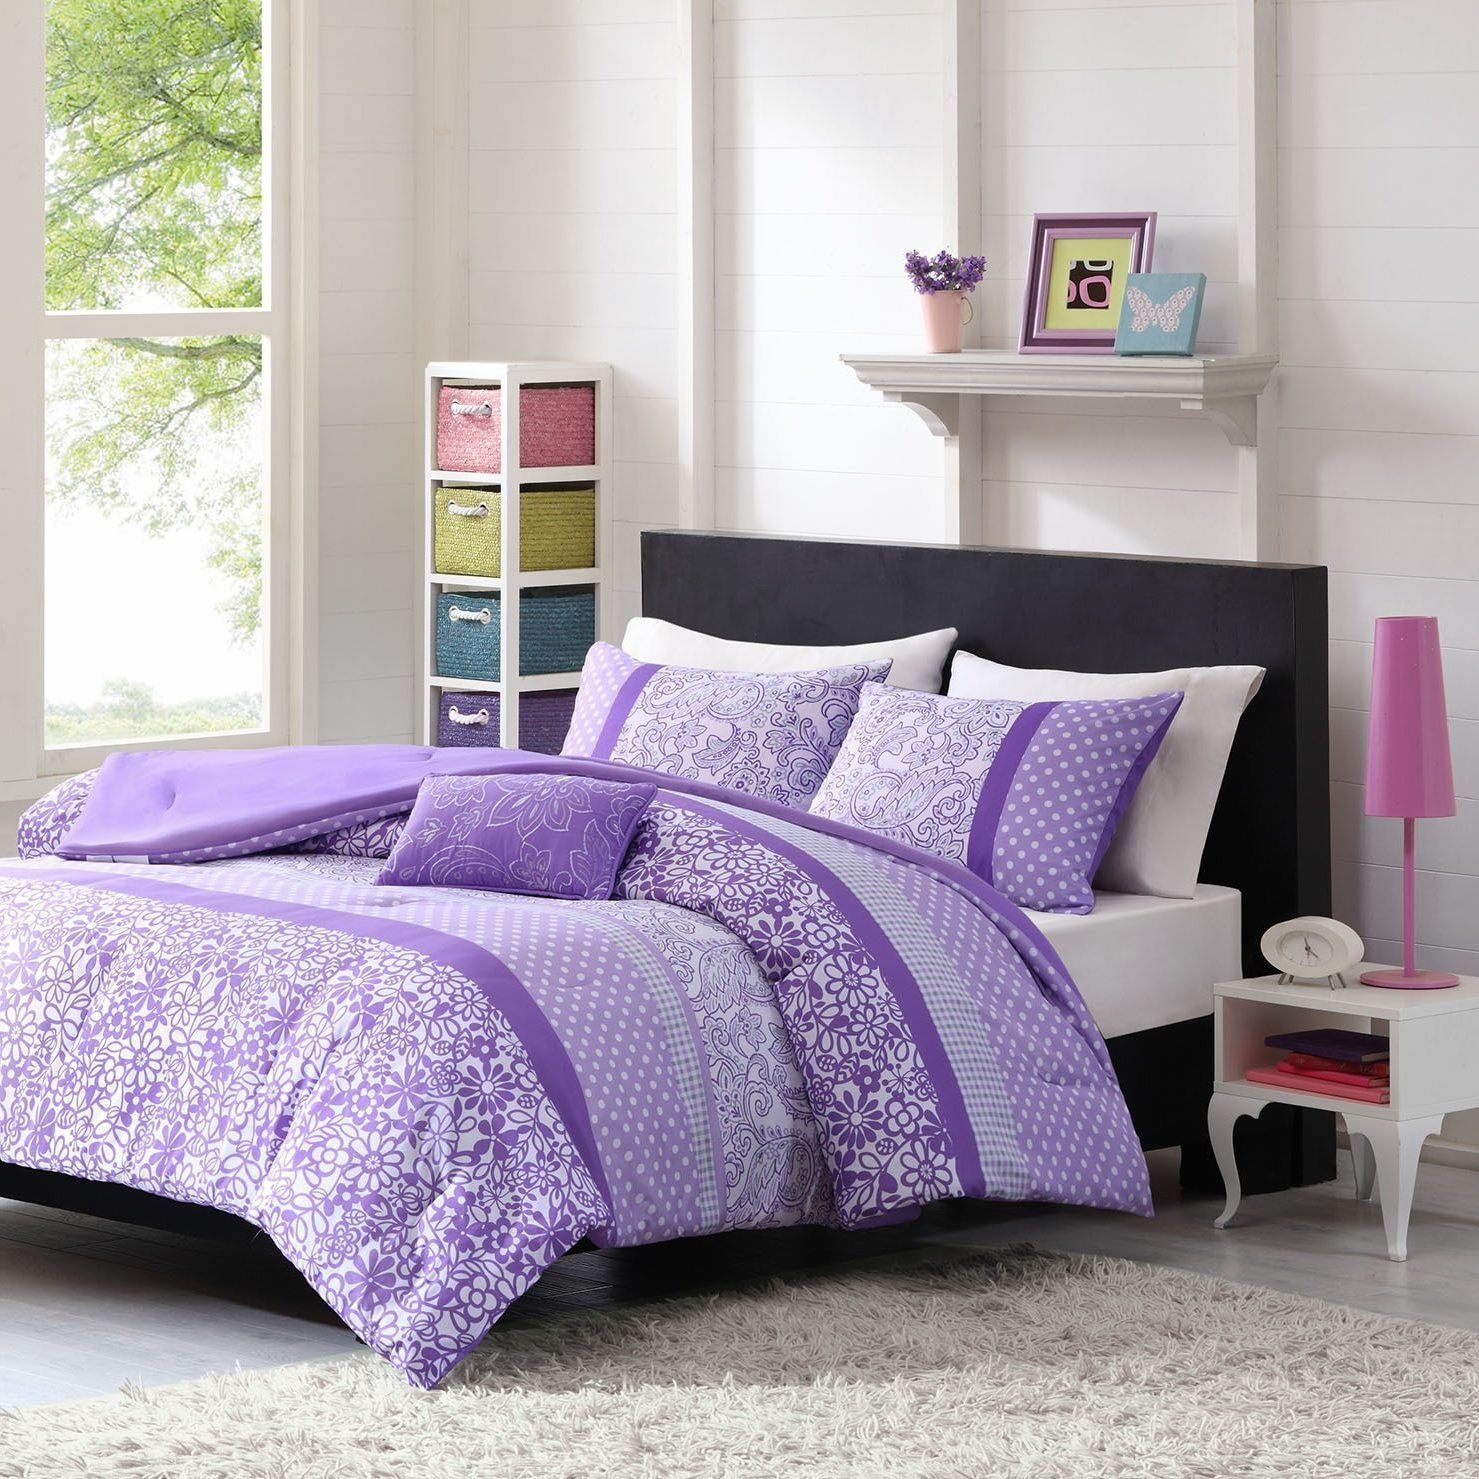 4 Piece Girls Purple White Floral Scroll Motif Comforter Full